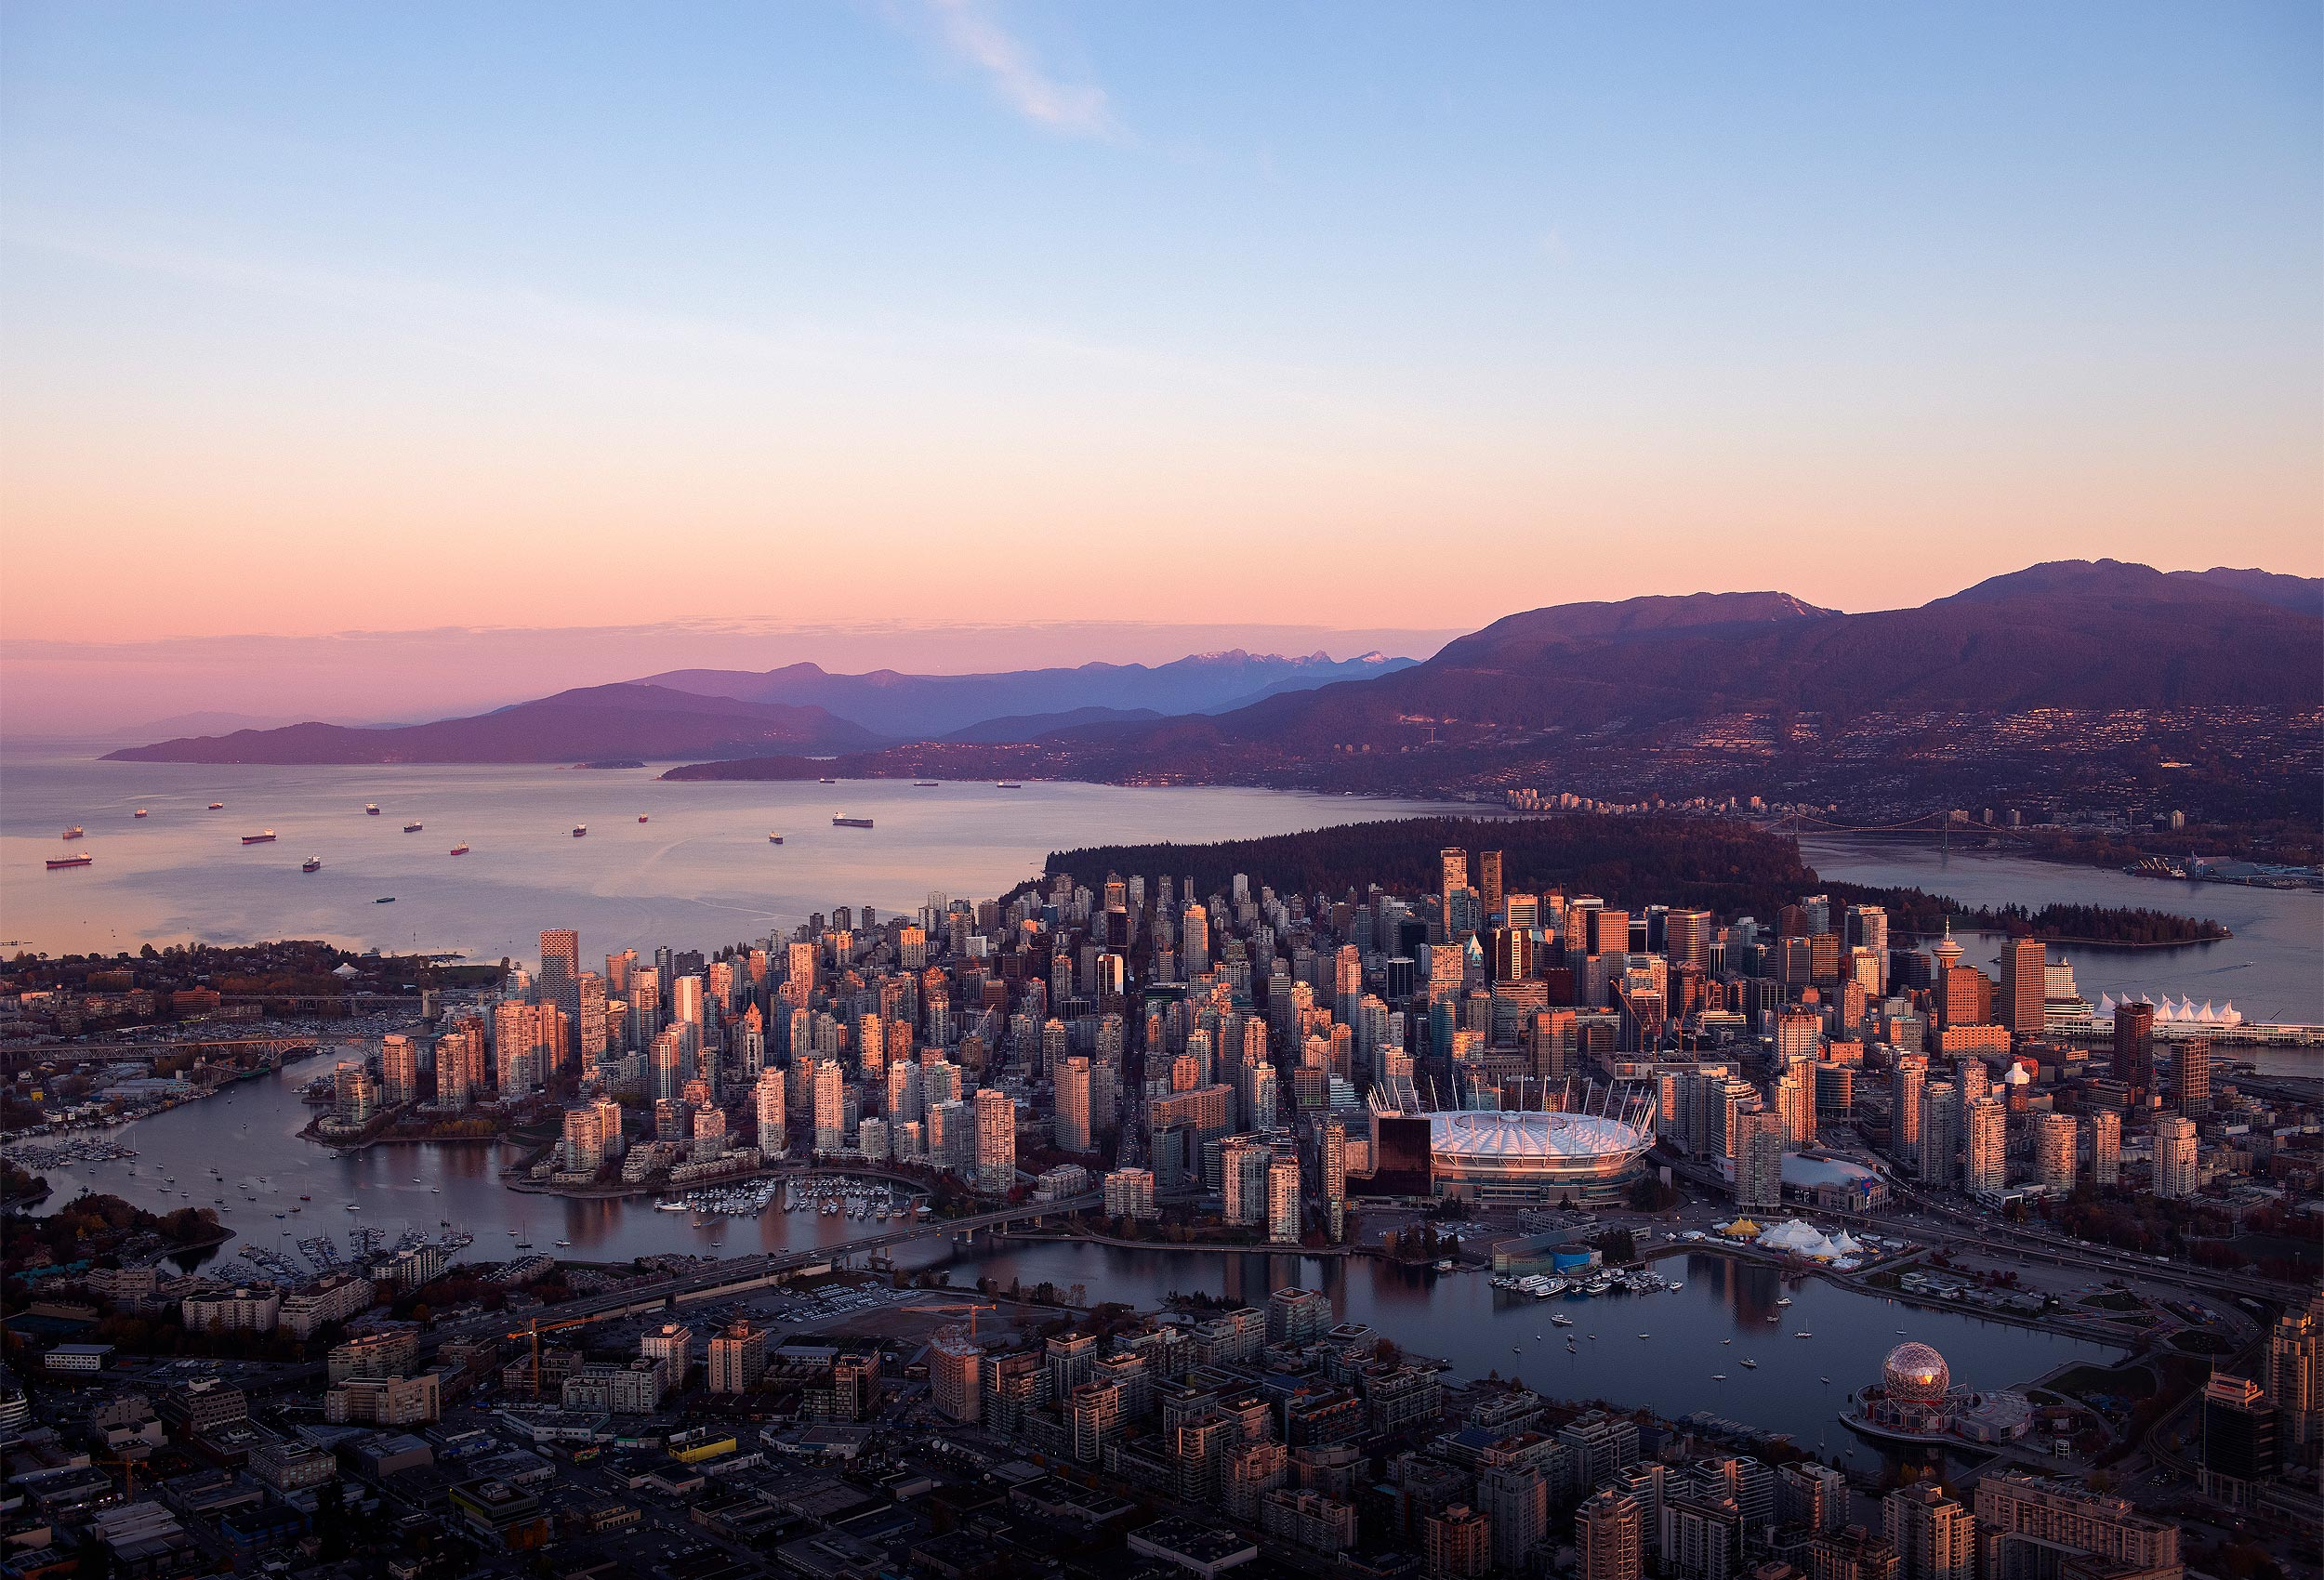 Aerial photograph of Vancouver at dawn by aerial photographer Kristopher Grunert